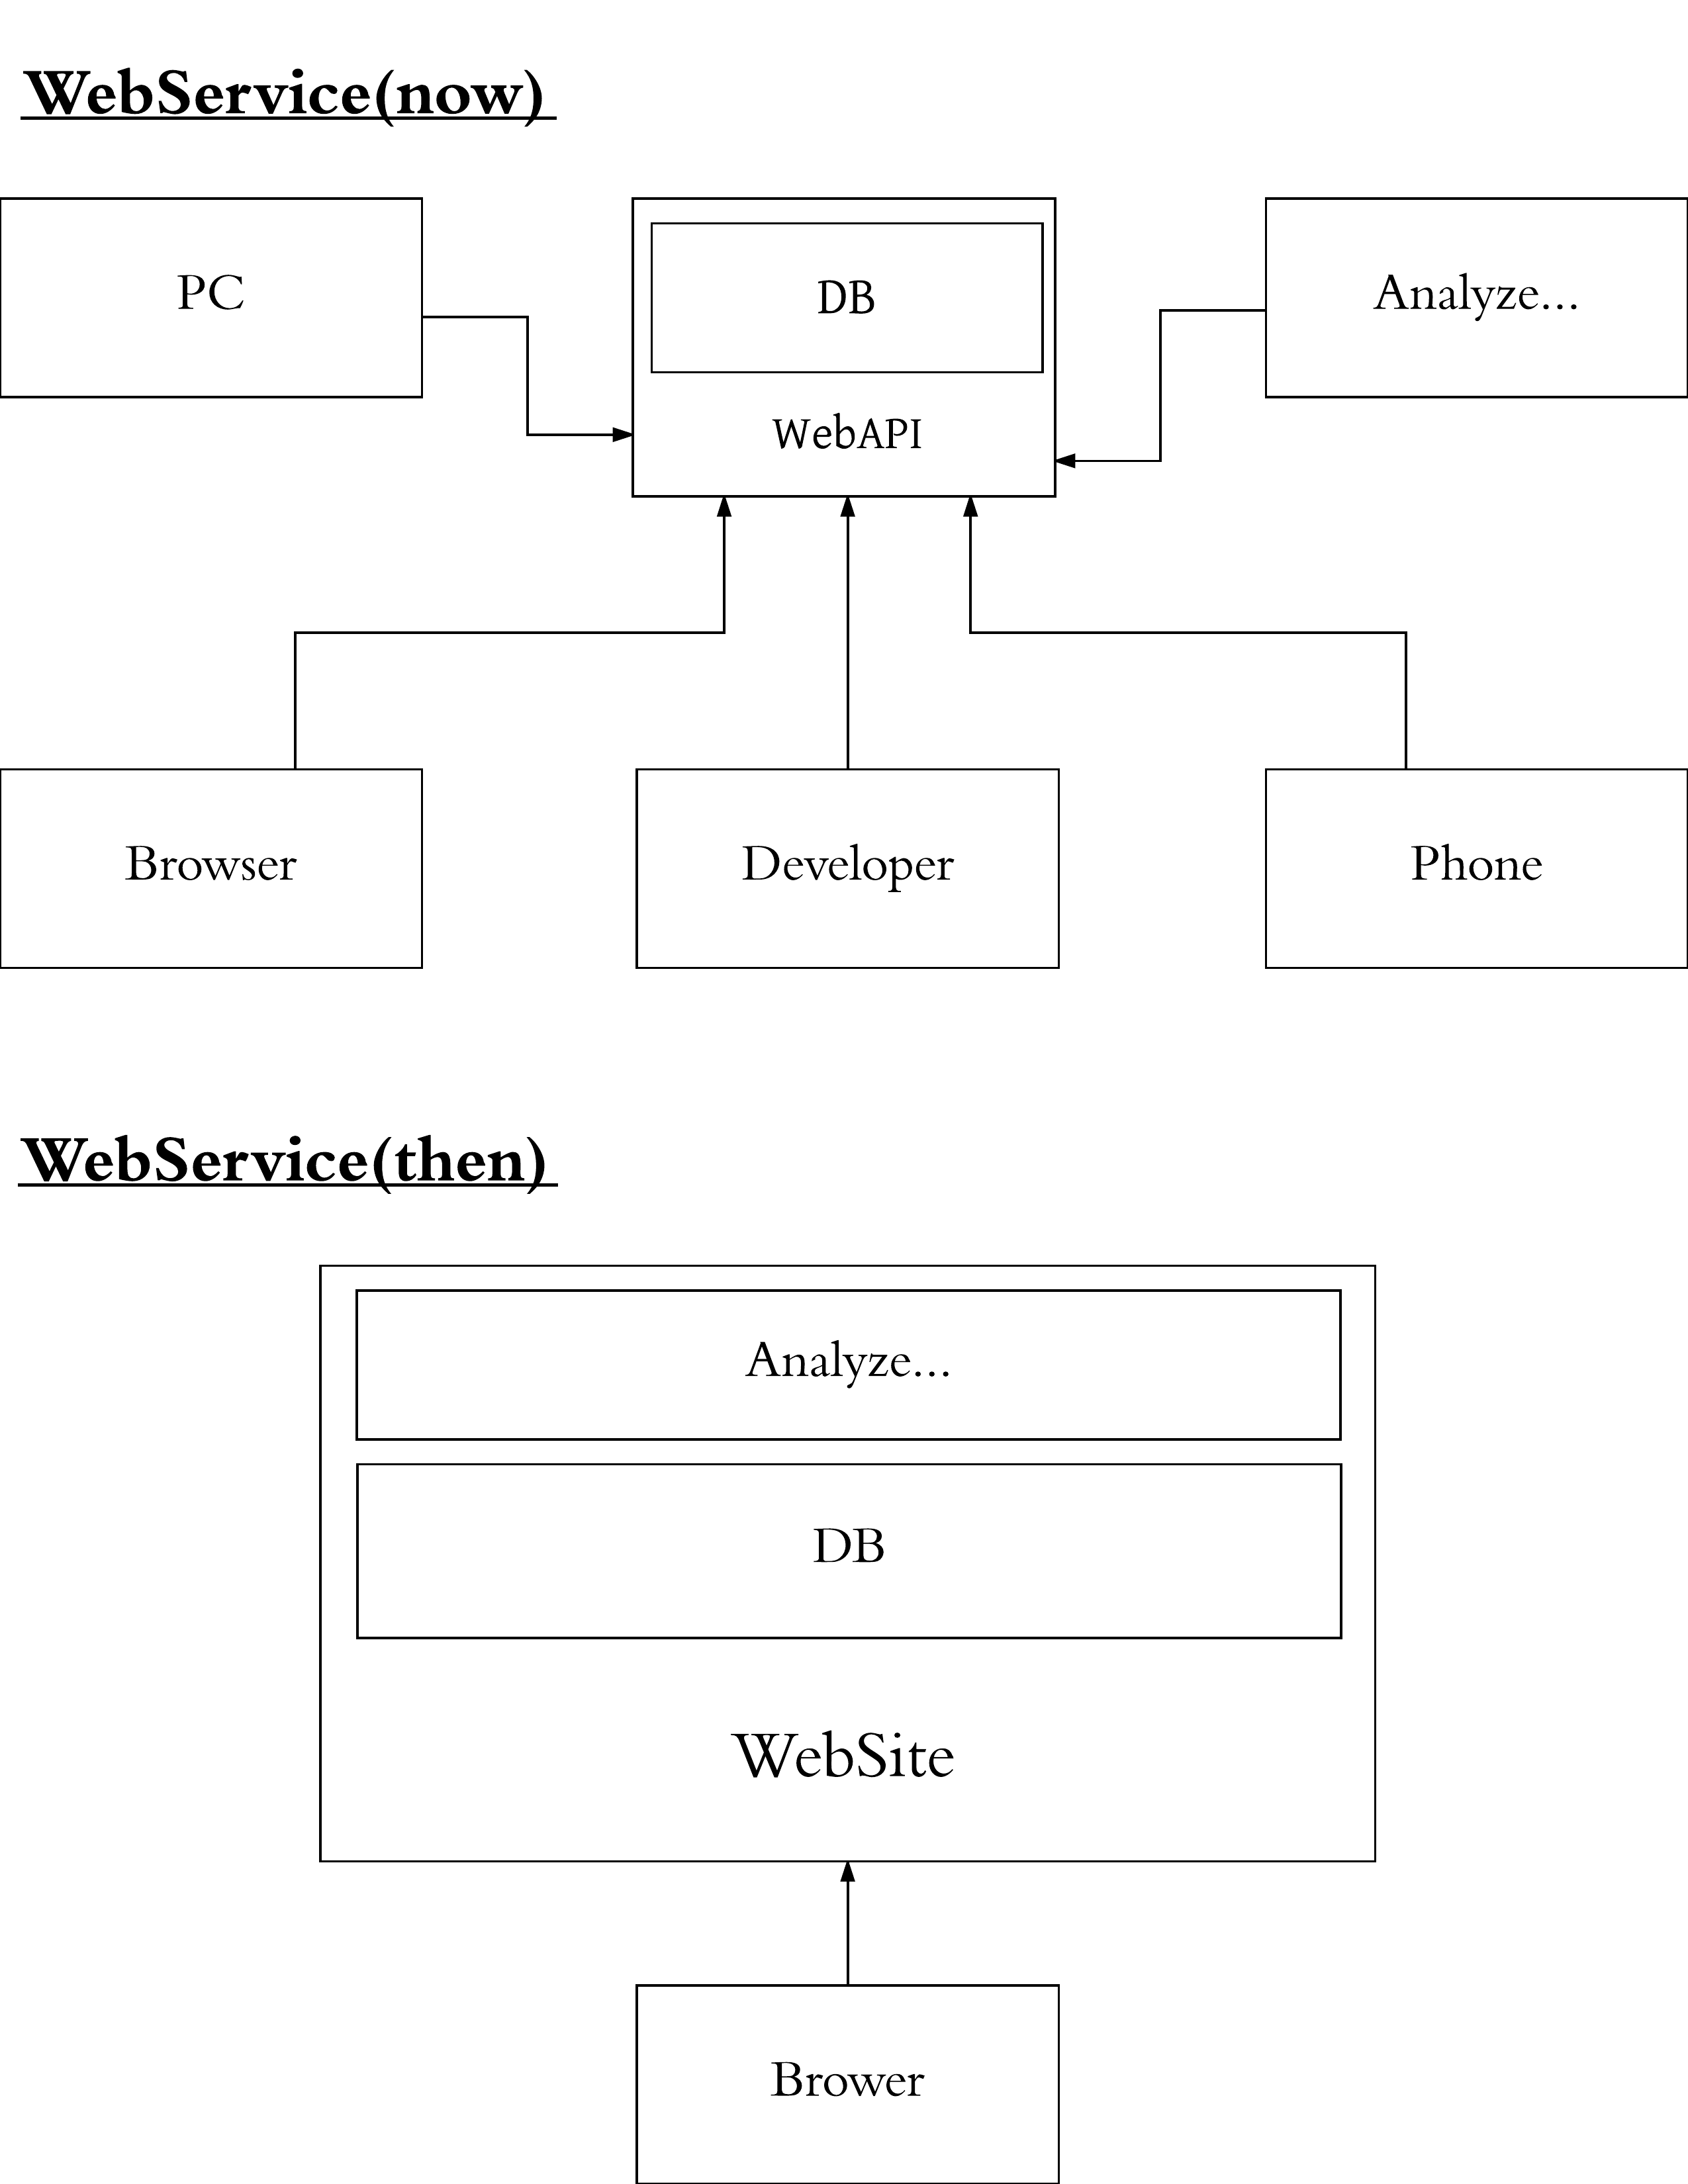 WebService - New Page.png